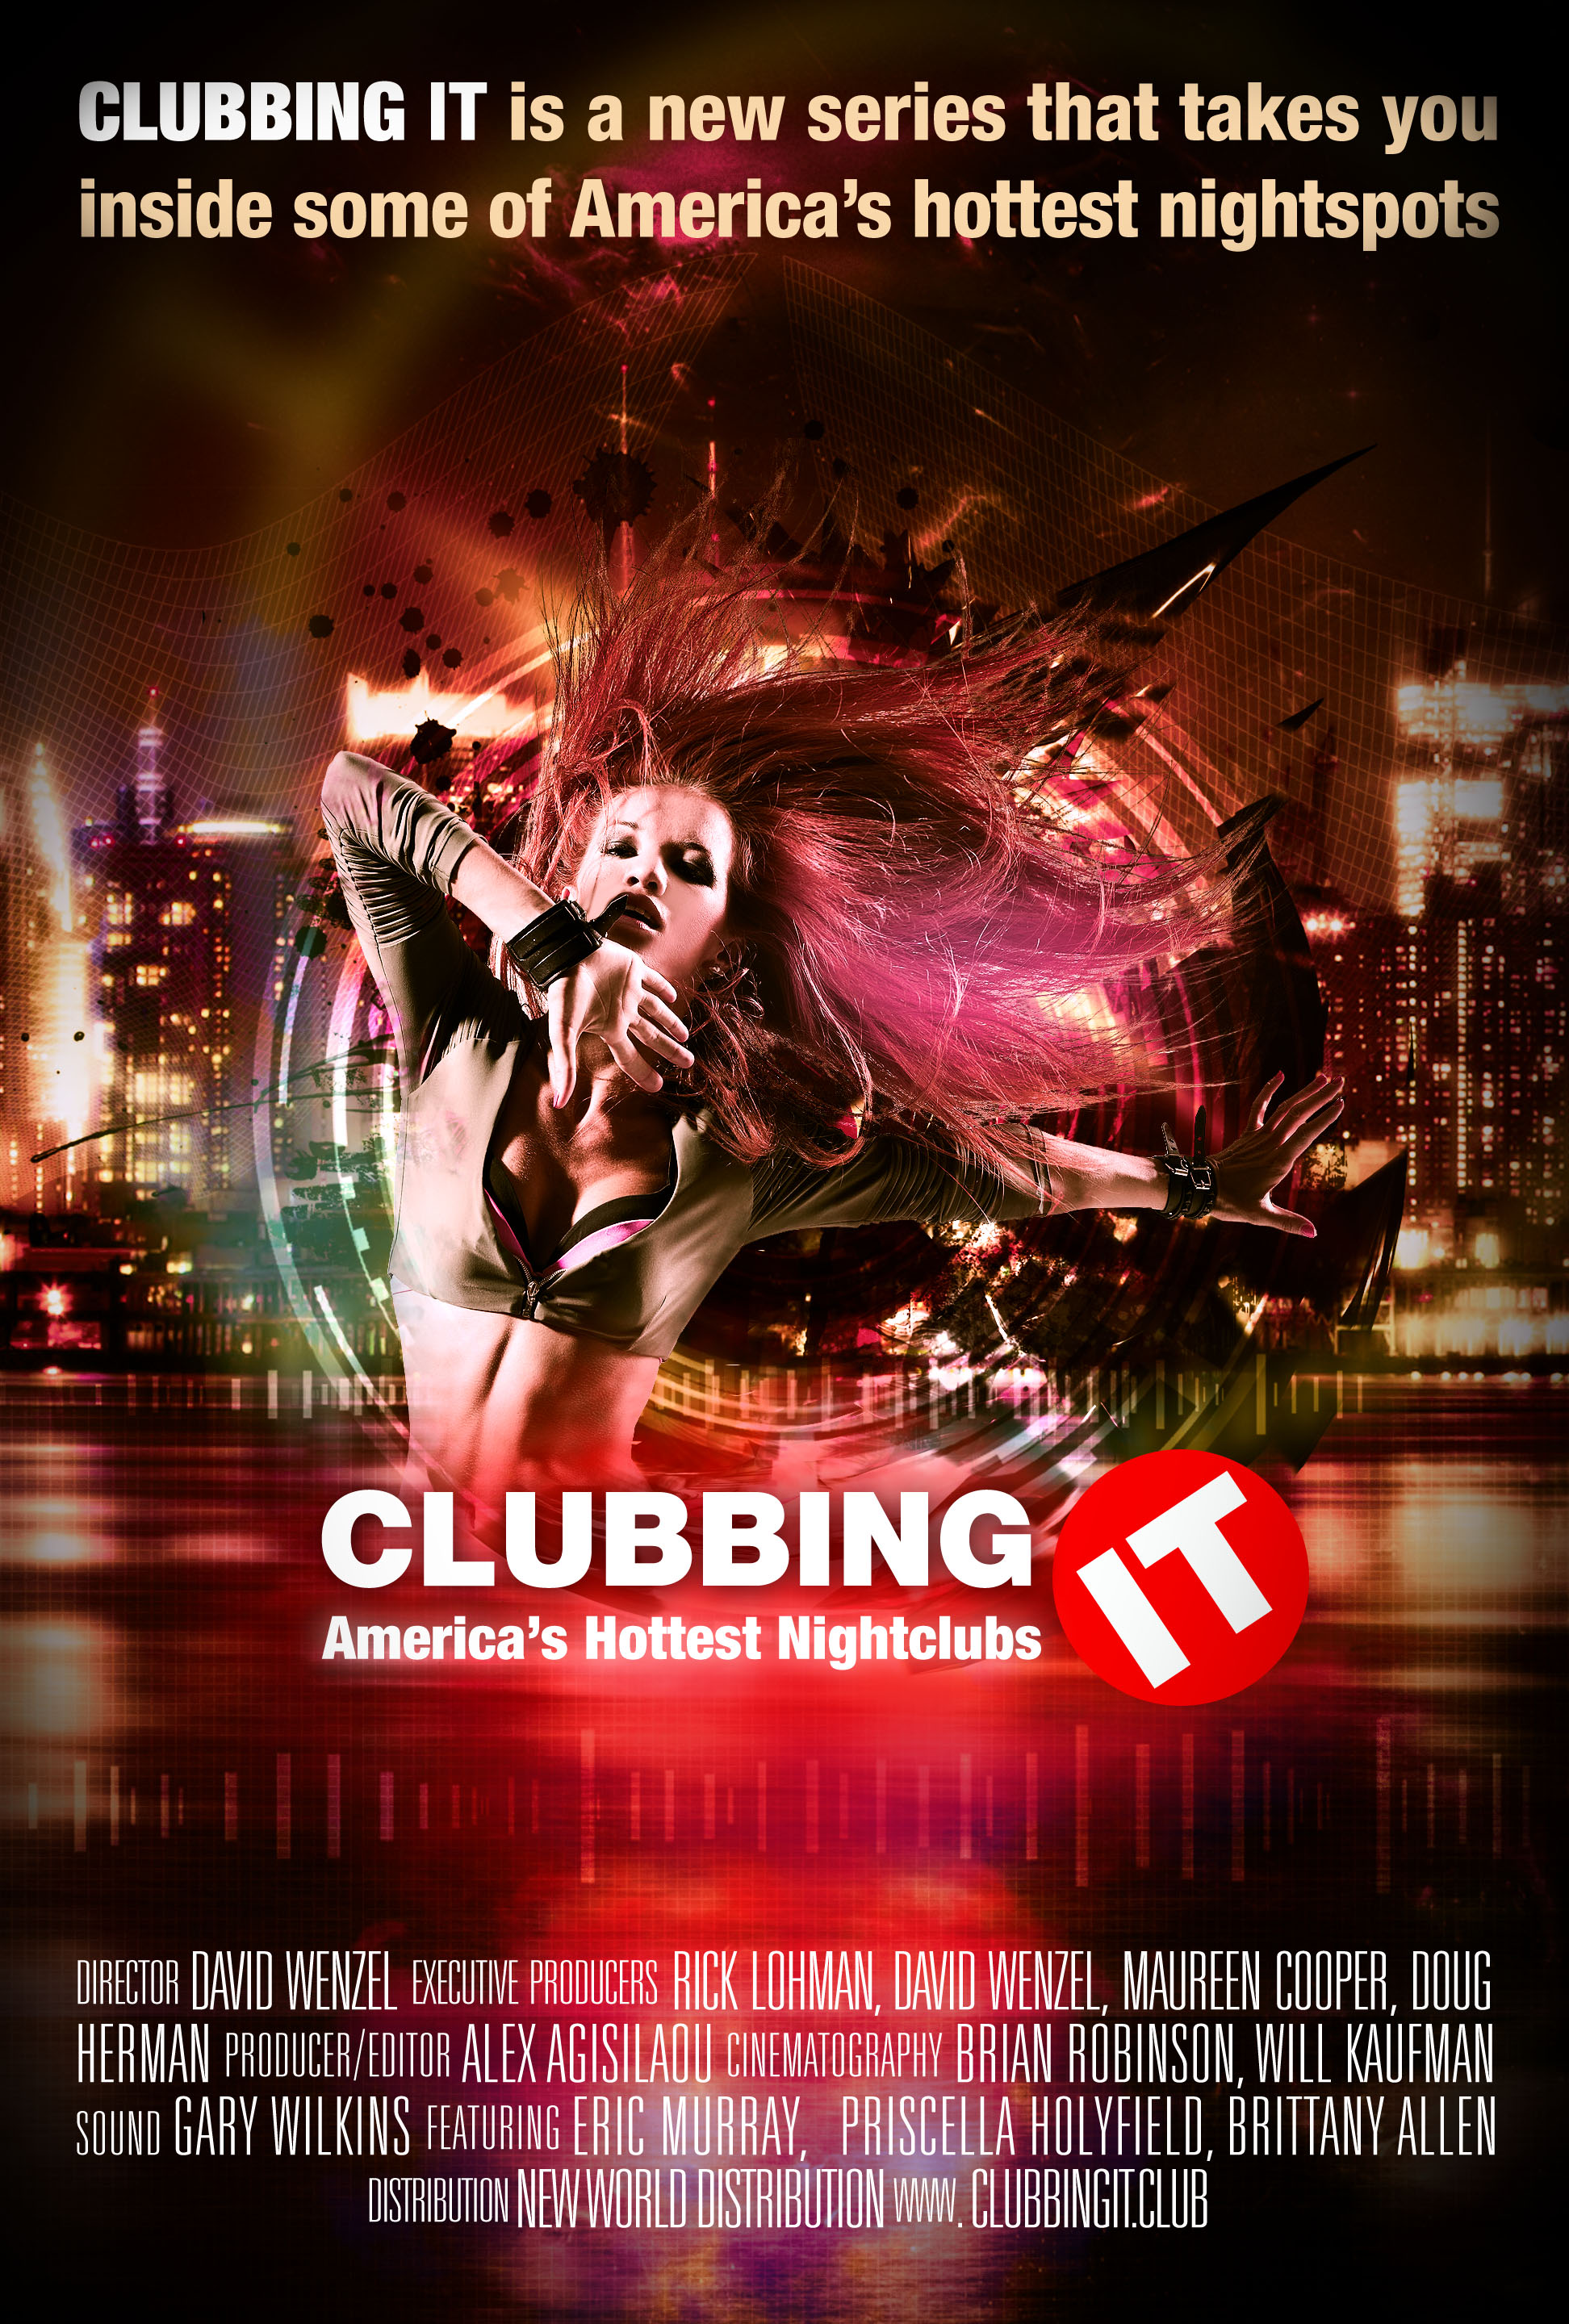 Clubbing IT TV series poster design